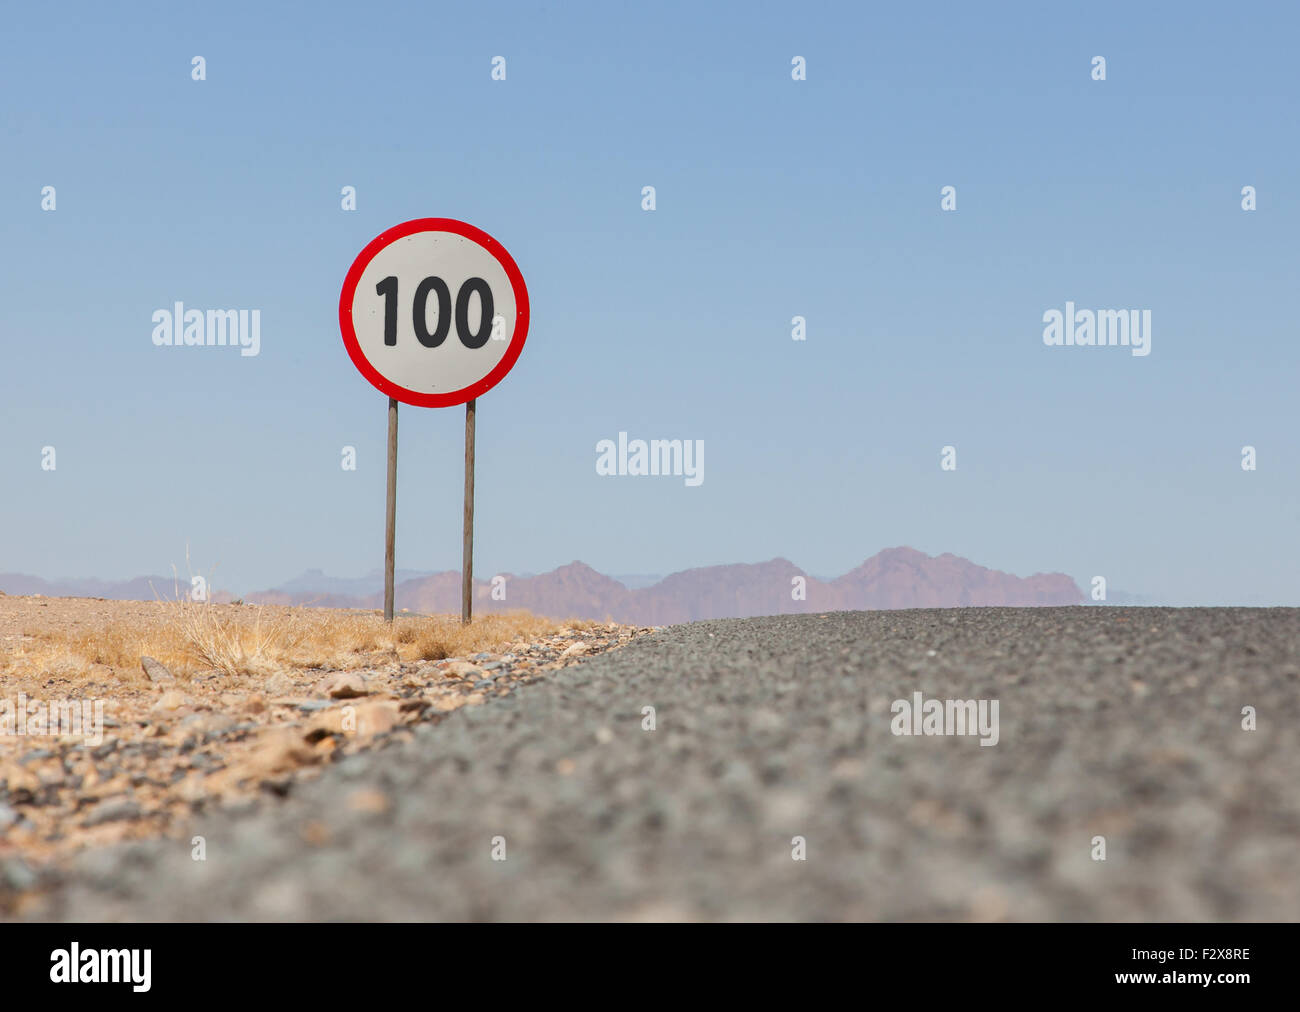 100 Kph To Mph >> Speed Limit Sign At A Desert Road In Namibia Speed Limit Of 100 Kph